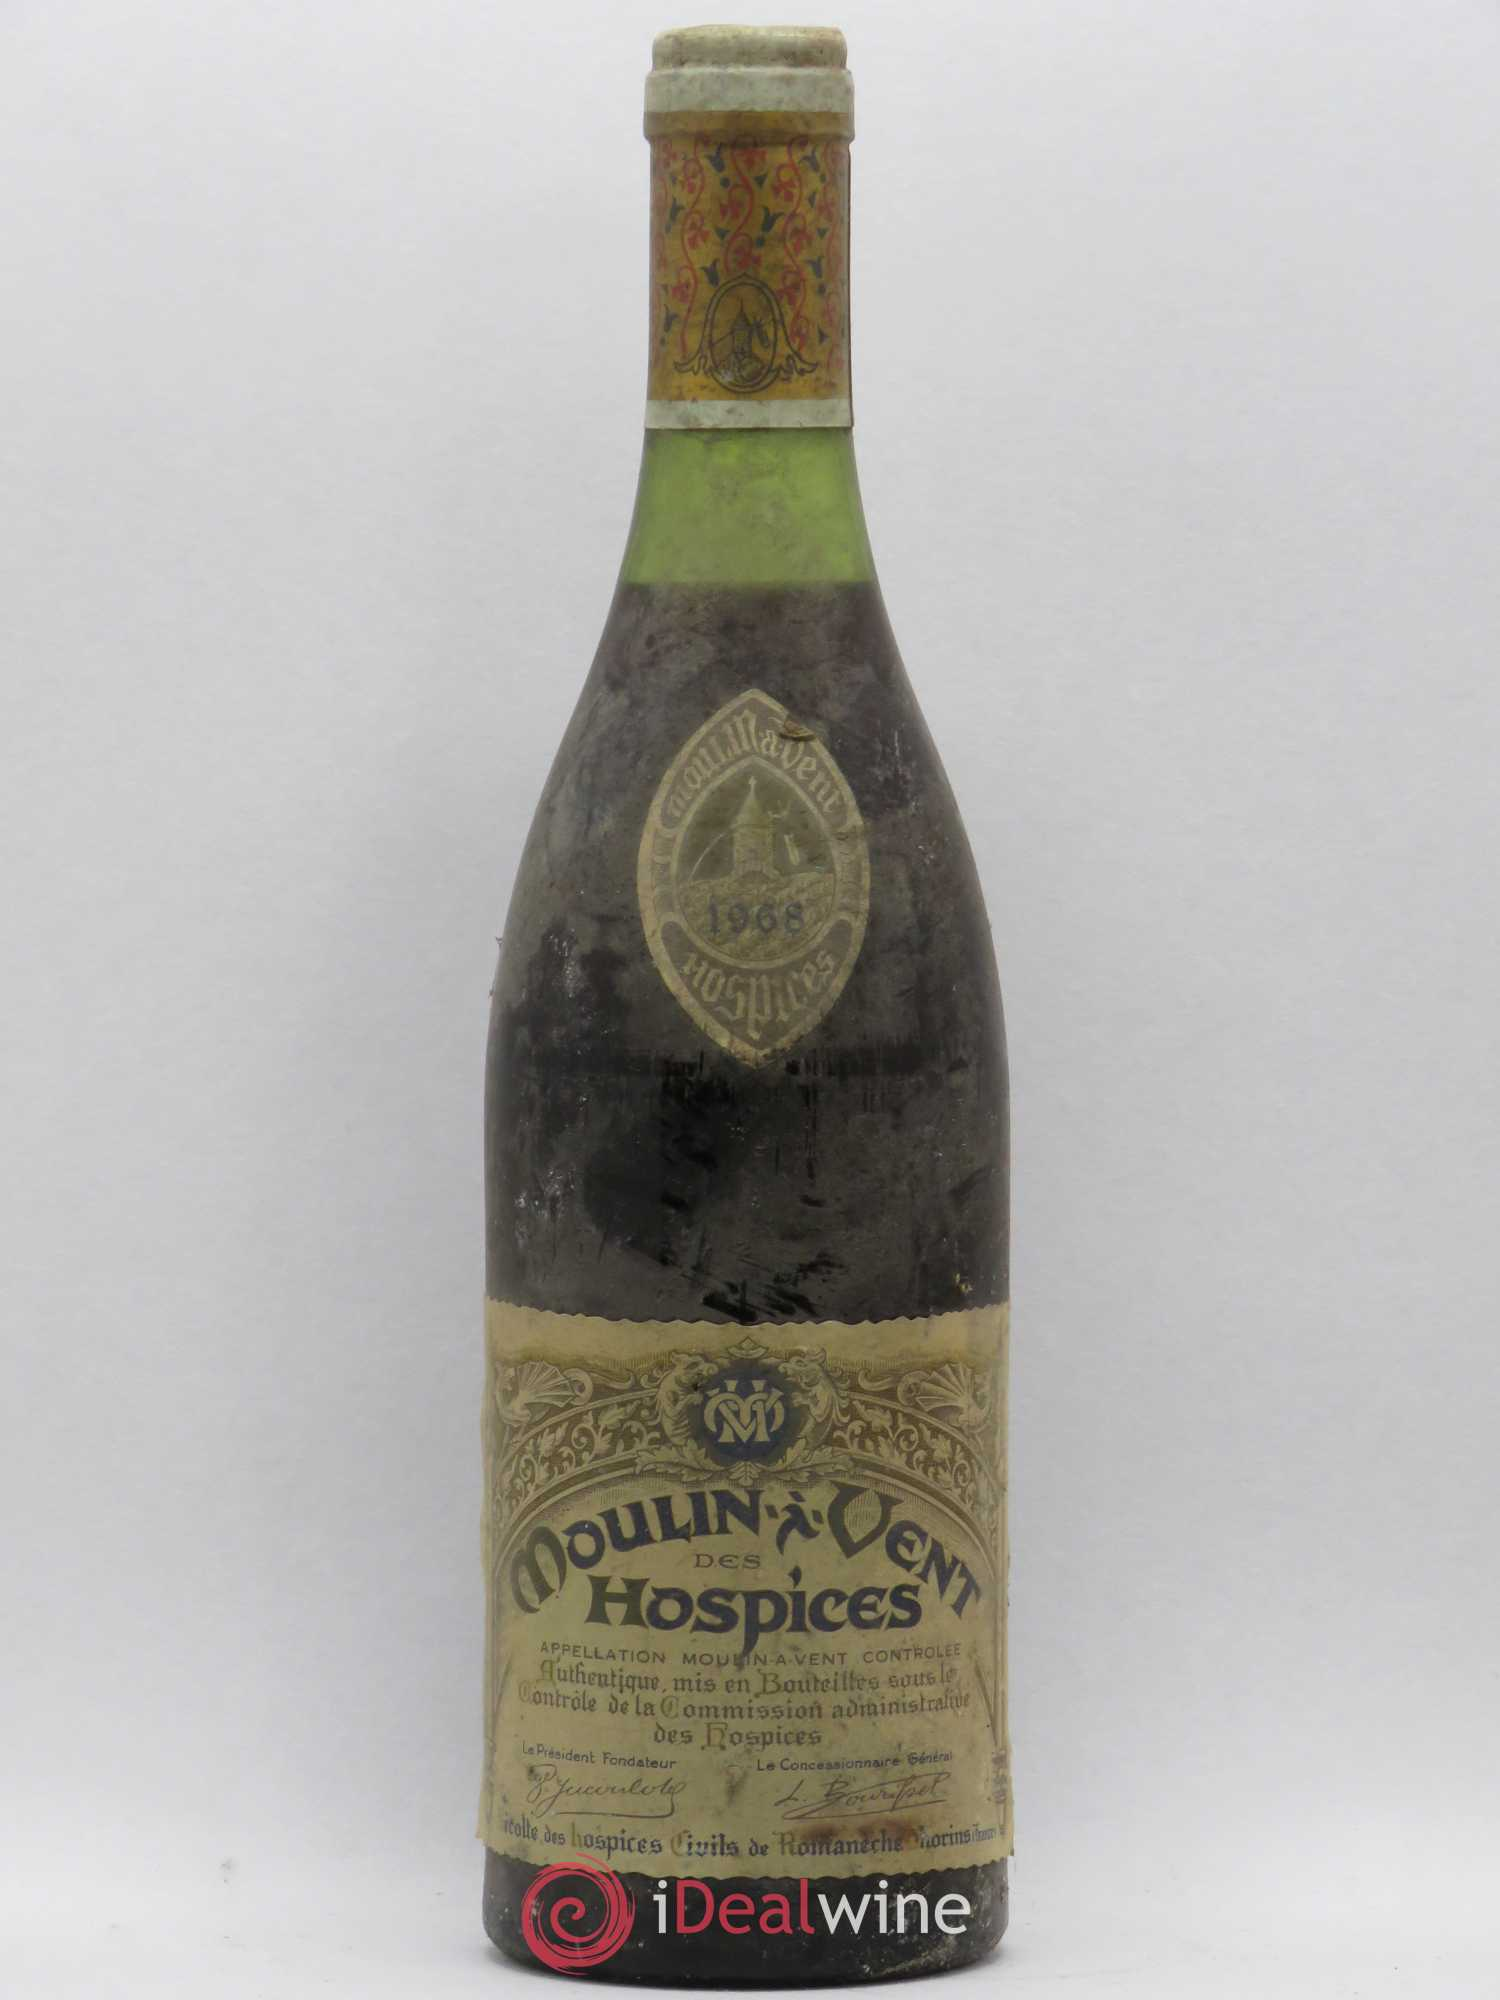 Moulin à Vent des Hospices Collin-Bourisset 1968 - Lot de 1 Bouteille